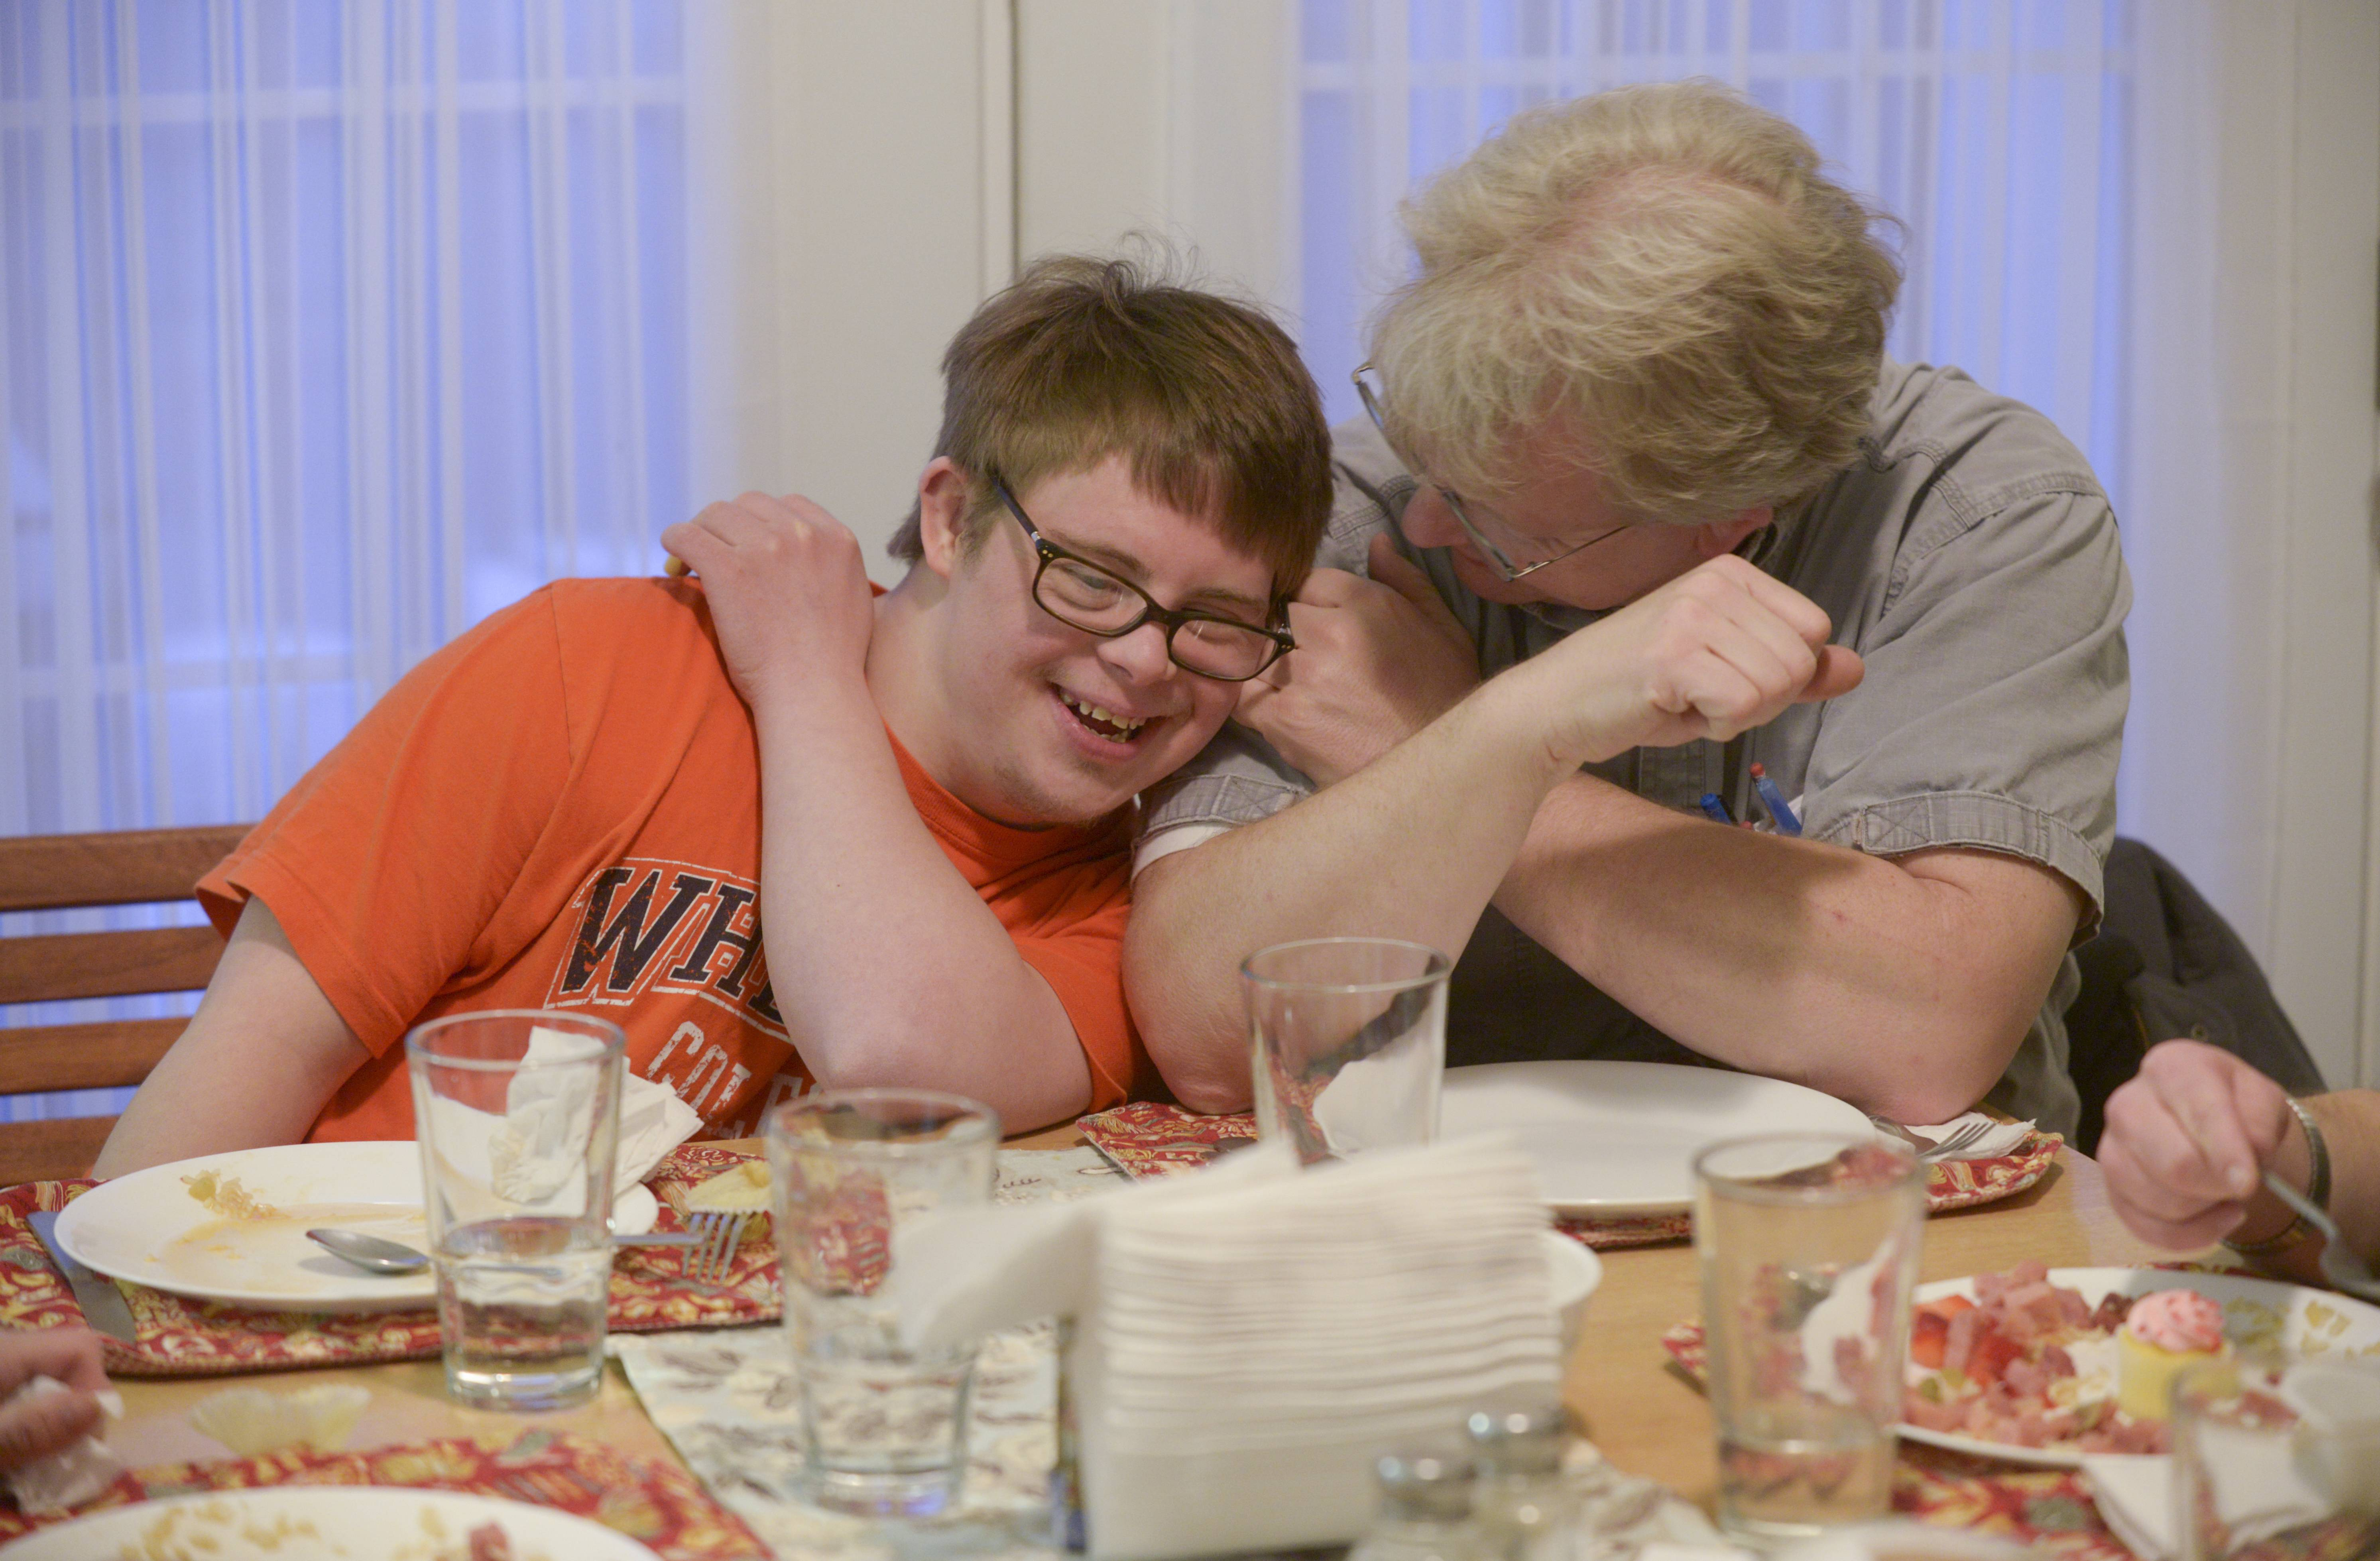 Washington House resident David Brinker, left, and staff member Trace Nelson share a moment during dinner.